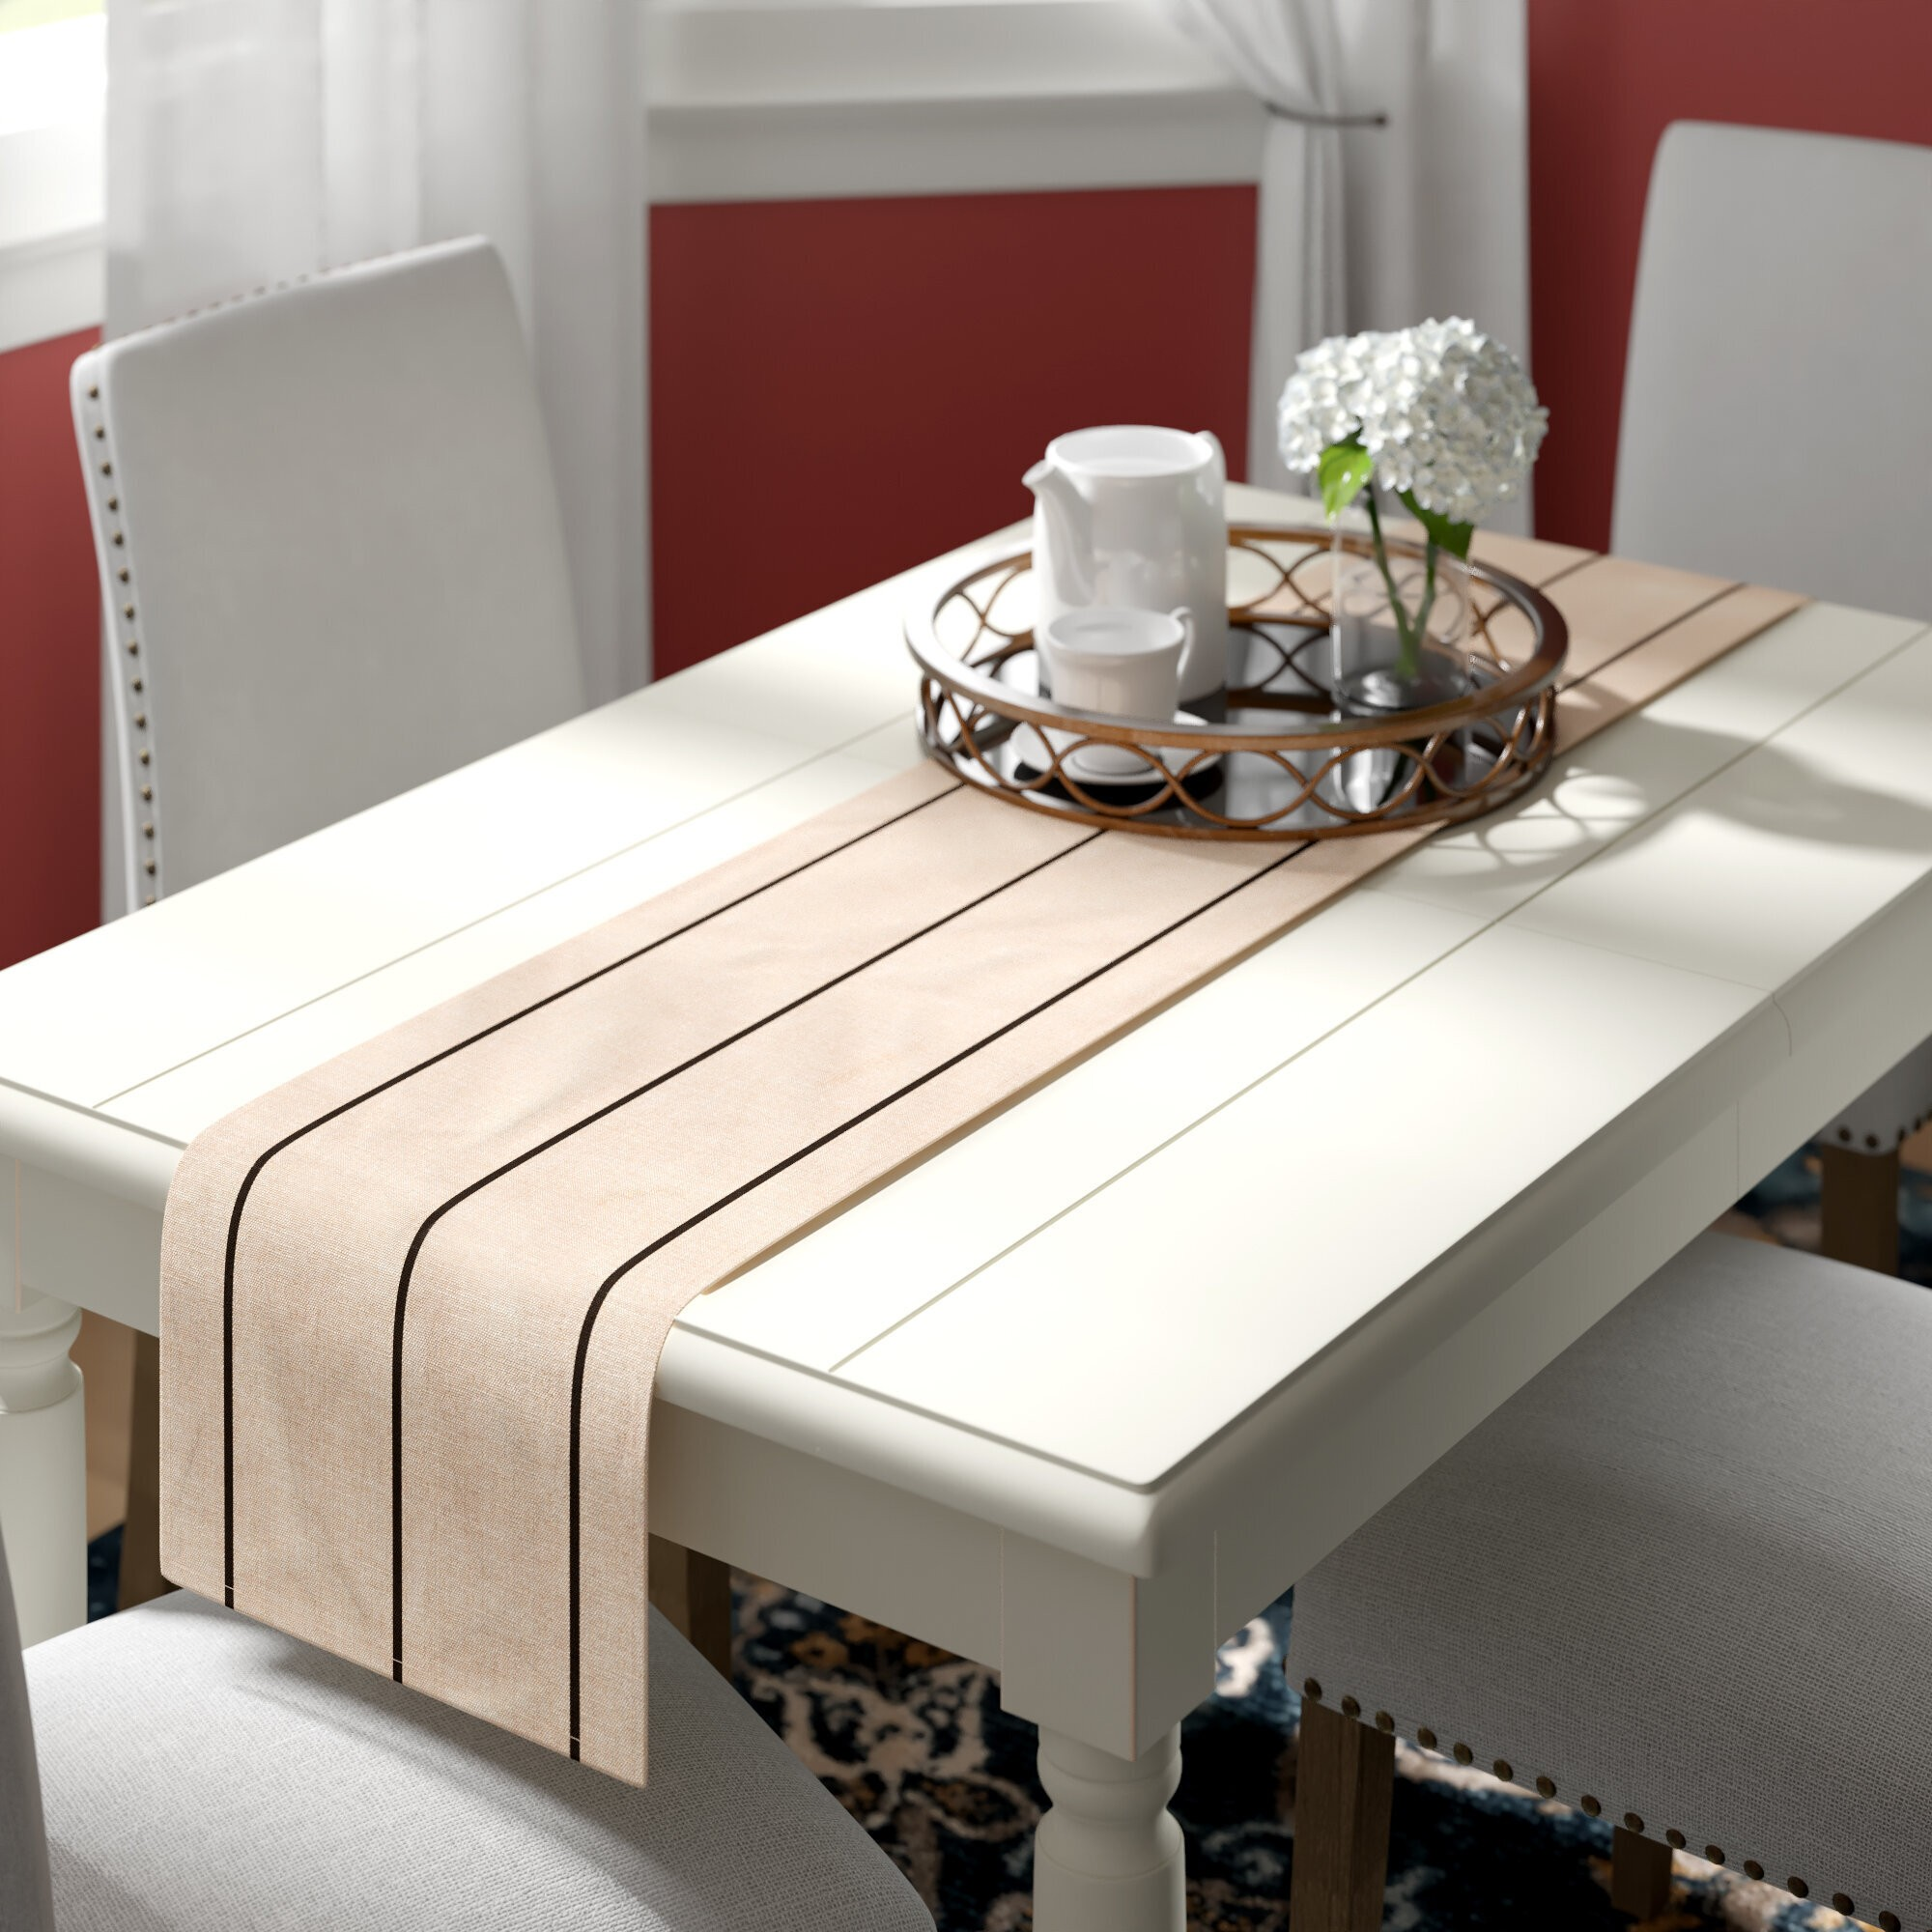 How To Choose A Table Runner